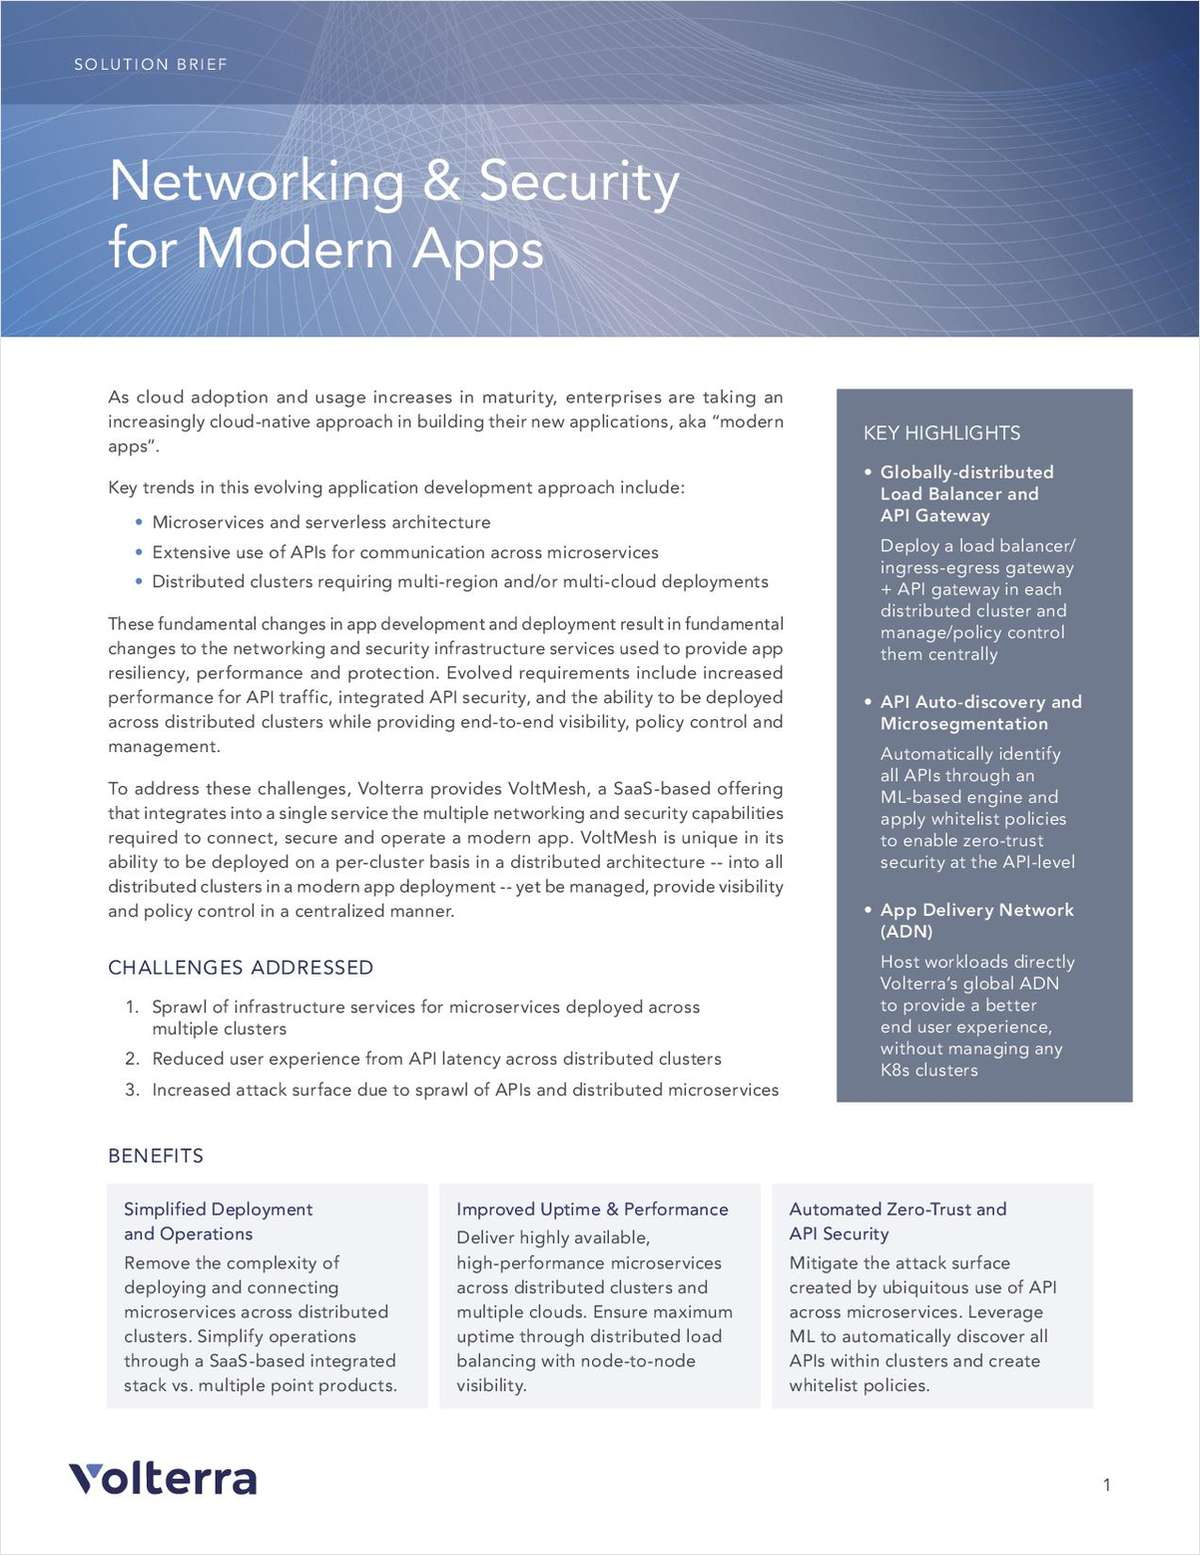 Networking & Security for Modern Apps